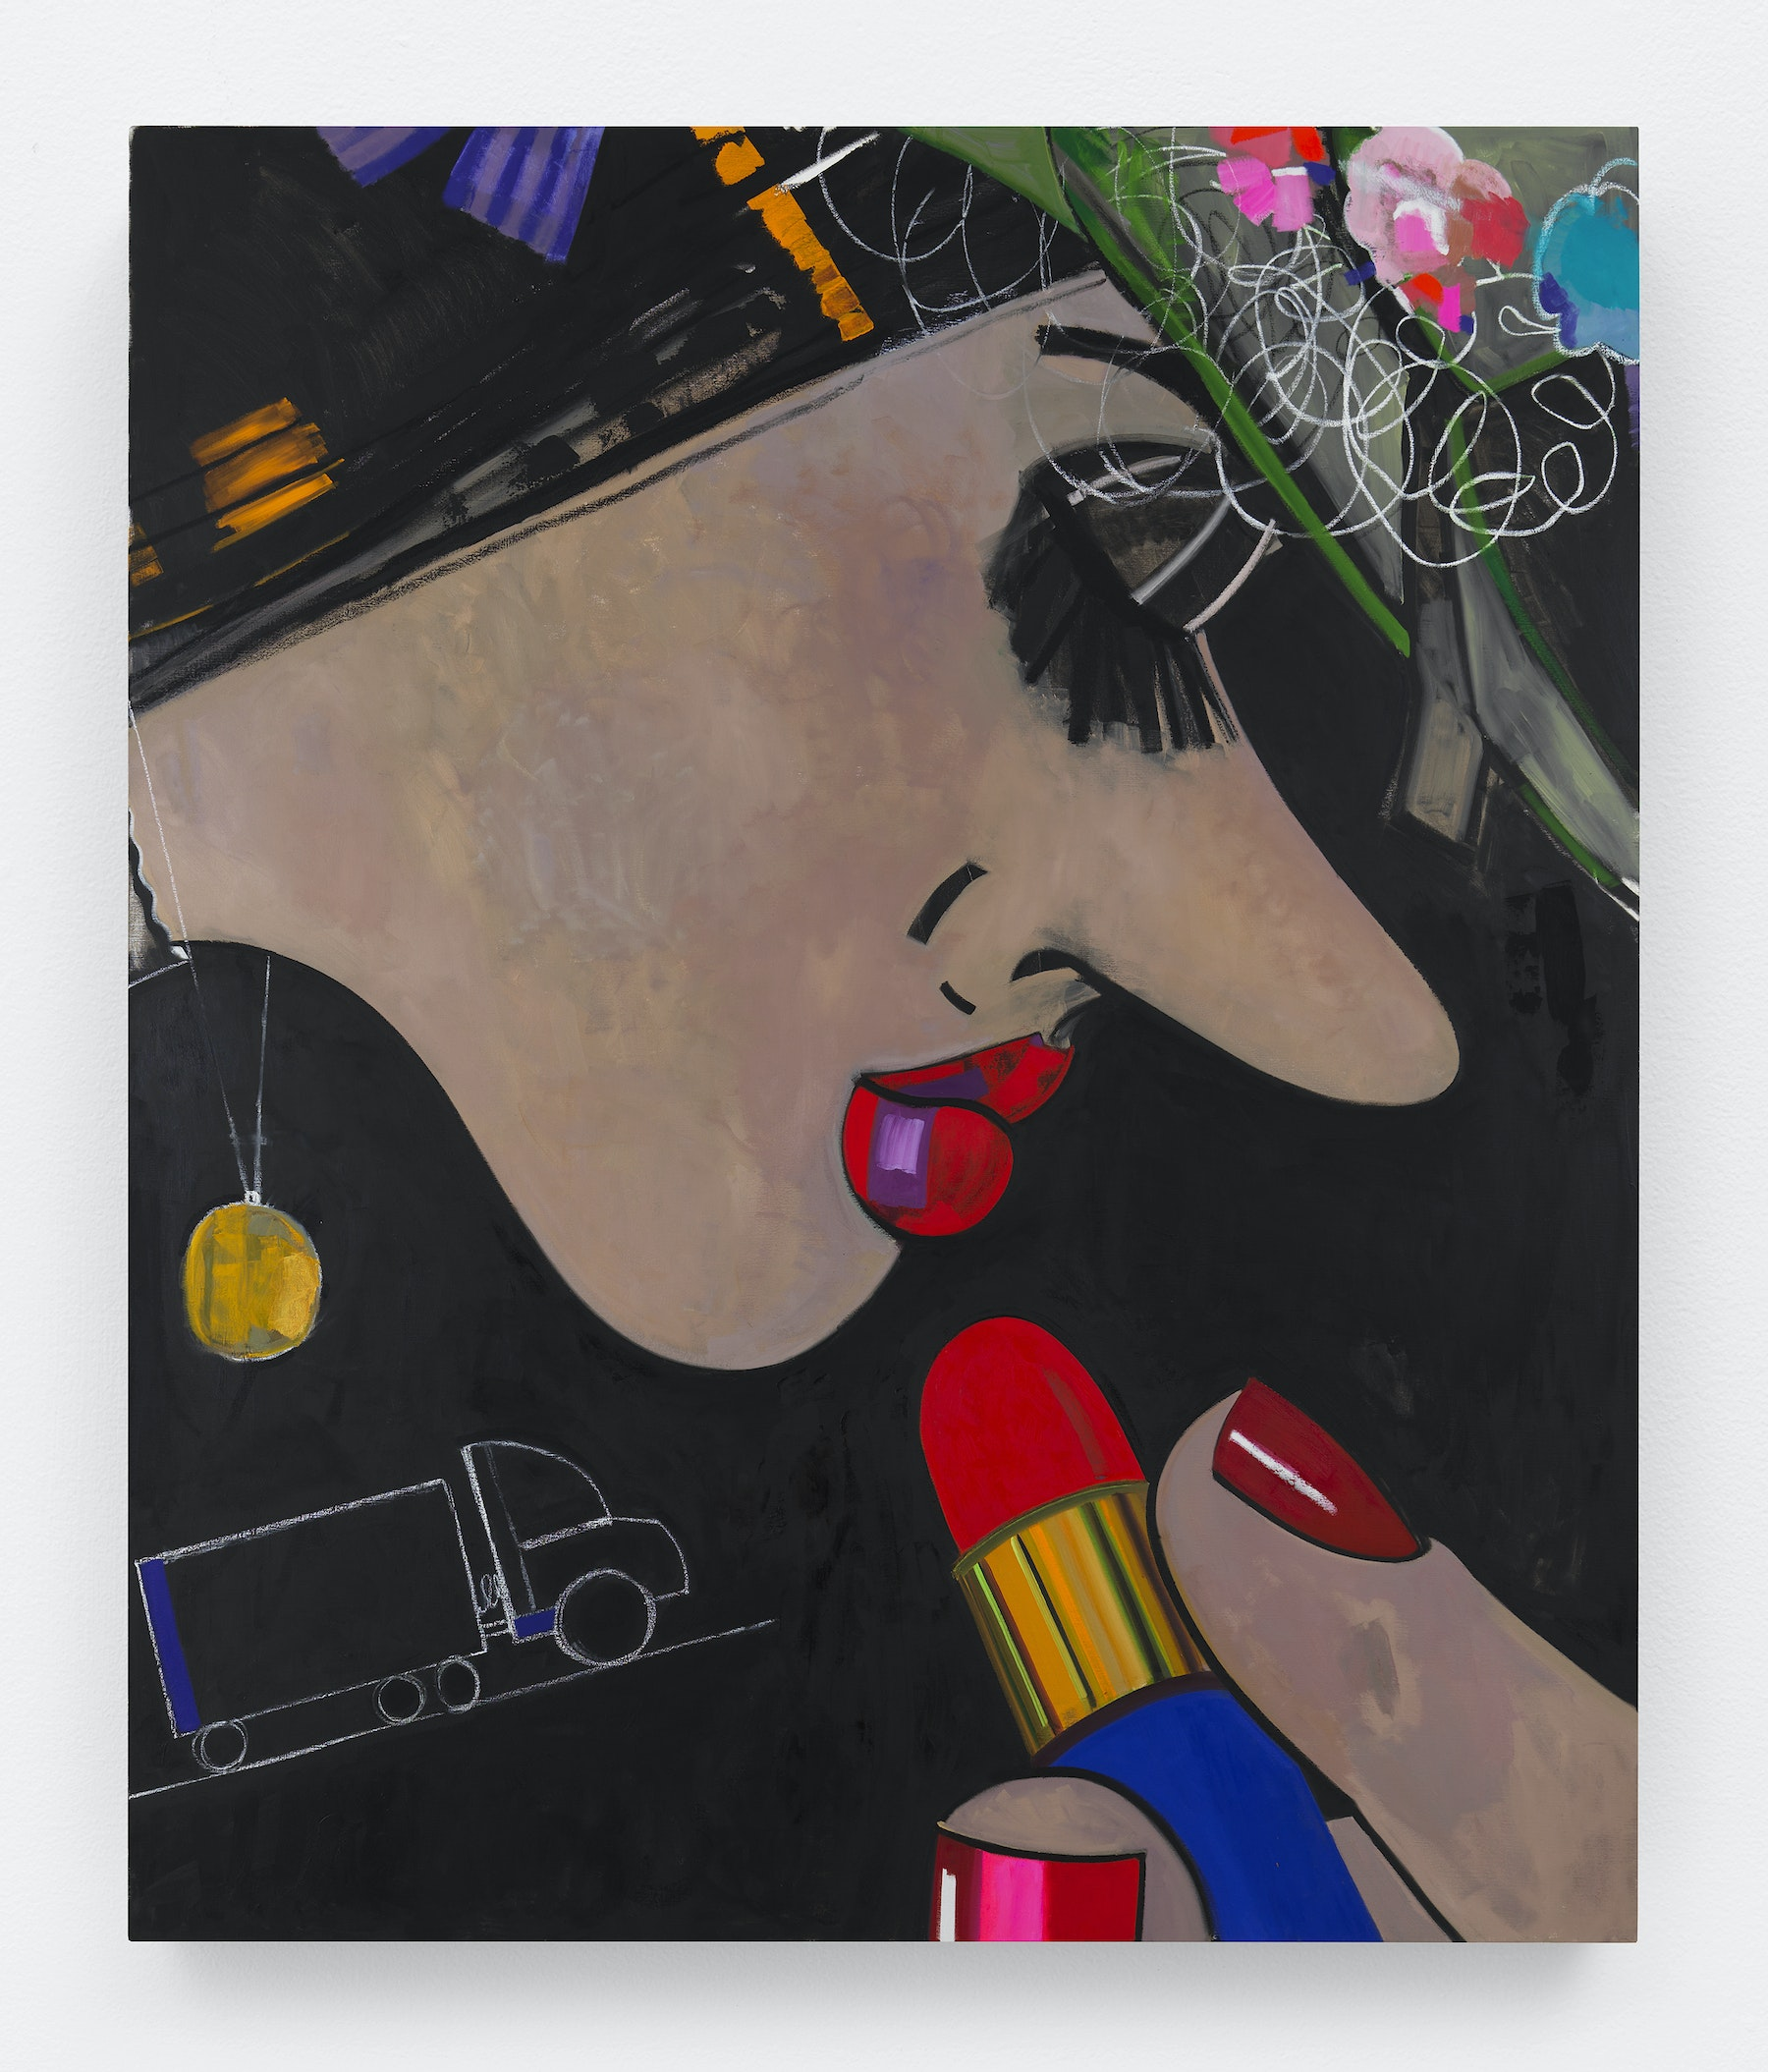 "Ellen Berkenblit ""Wildflower Hat,"" 2018 Oil and paintstick on linen 91 x 76"" [HxW] (231.14 x 193.04 cm) Inventory #BER187 Courtesy of the artist and Vielmetter Los Angeles Photo credit: Object Studies"